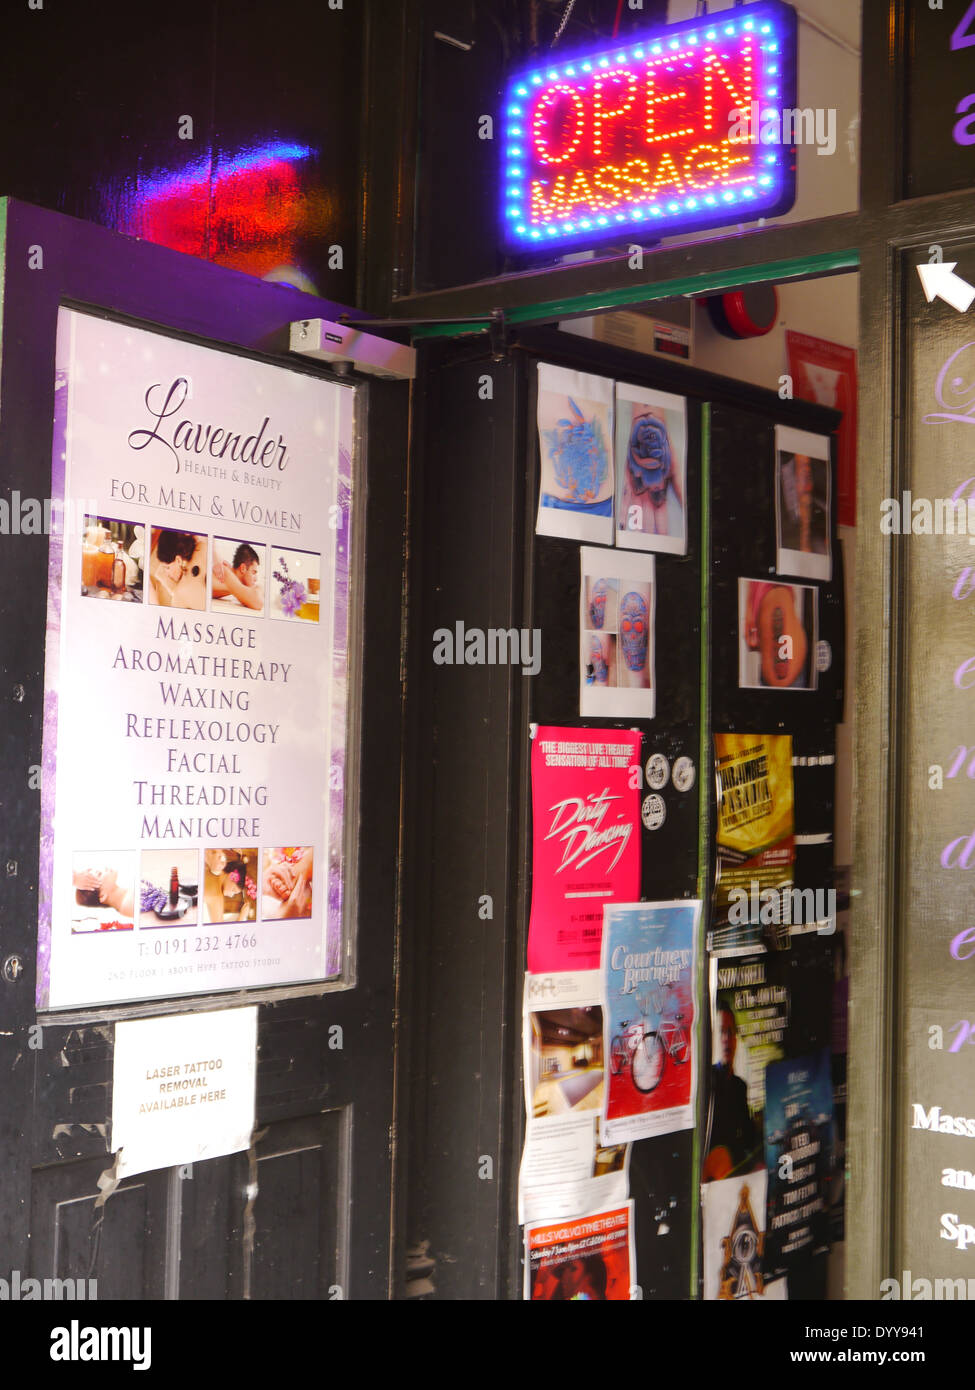 Massage parlour doorway with neon sign and bill posters / advertisments - Stock Image